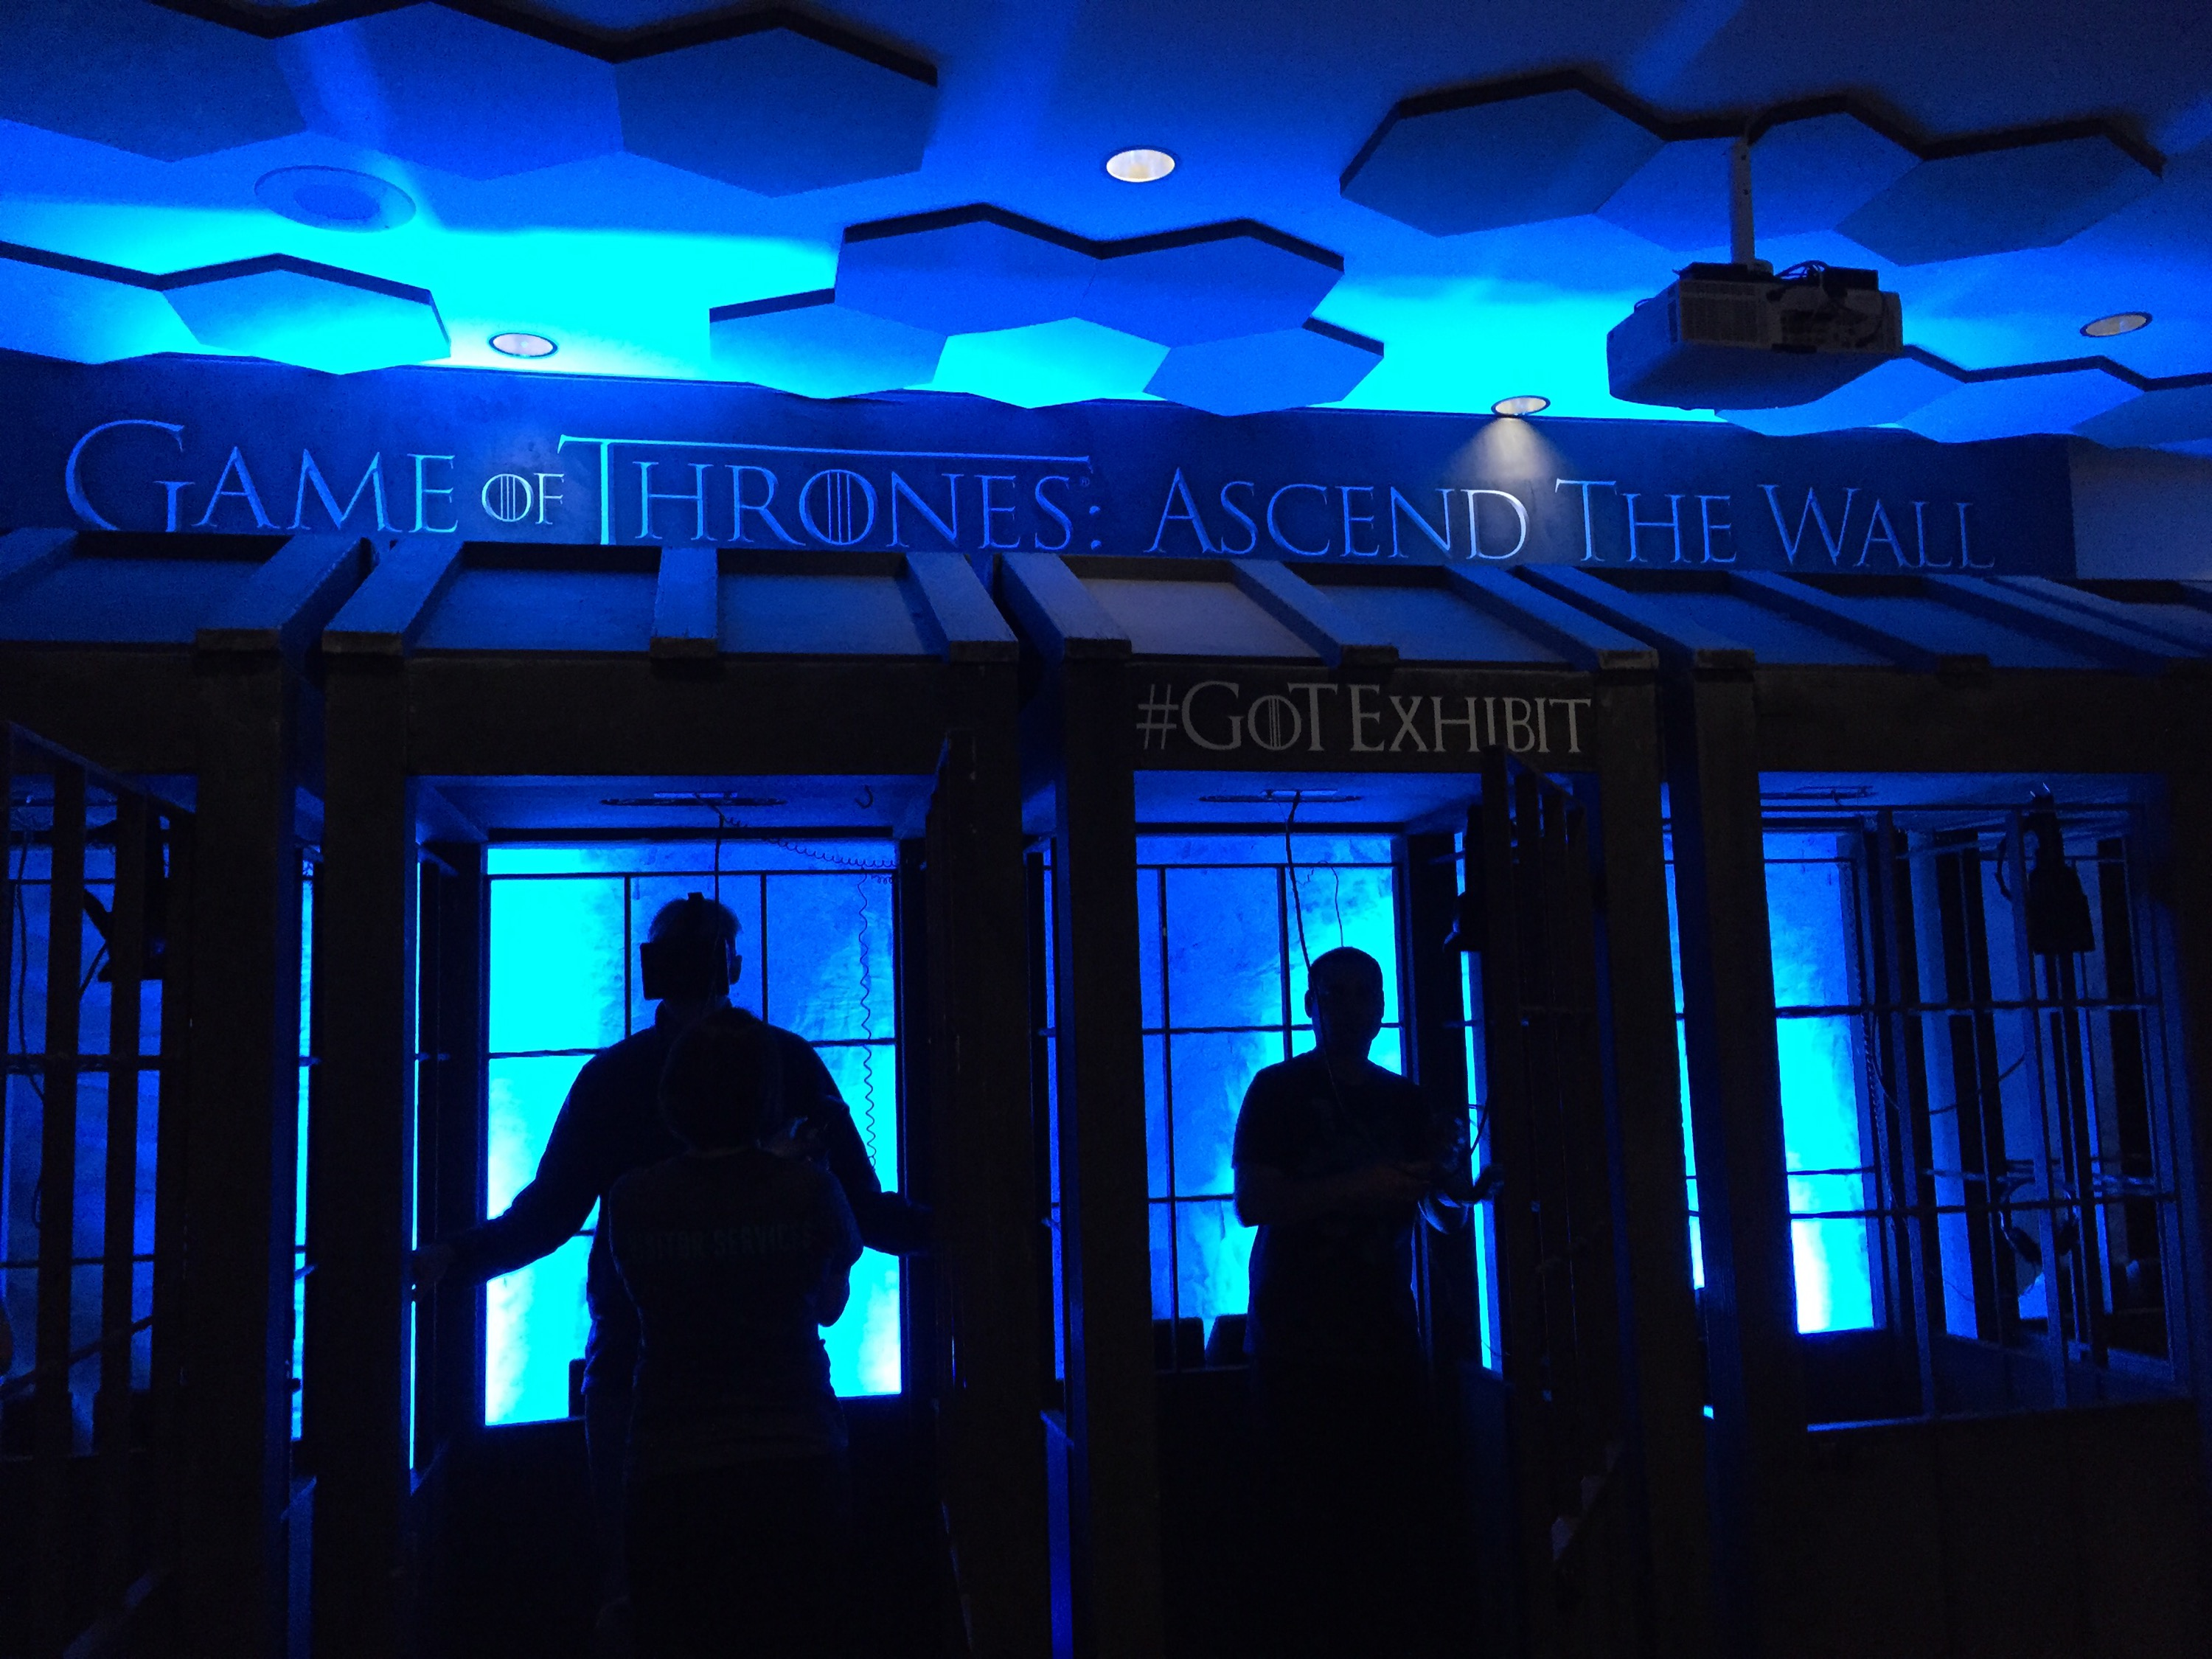 Game Of Thrones: Ascend The Wall